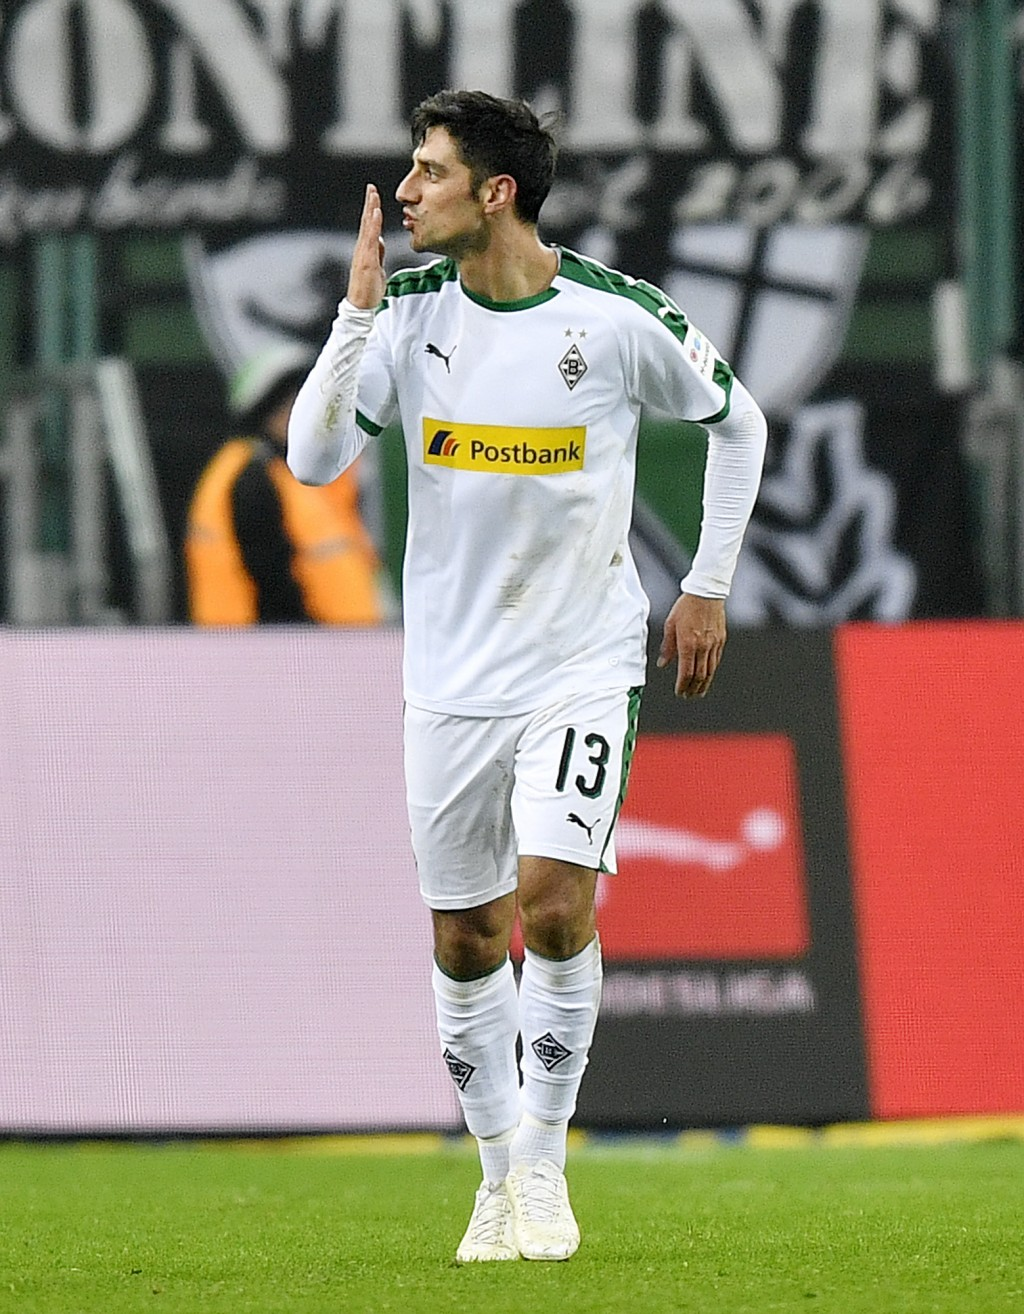 Moenchengladbach's Lars Stindl celebrates after scoring his side's third goal during the German Bundesliga soccer match between Borussia Moenchengladb...